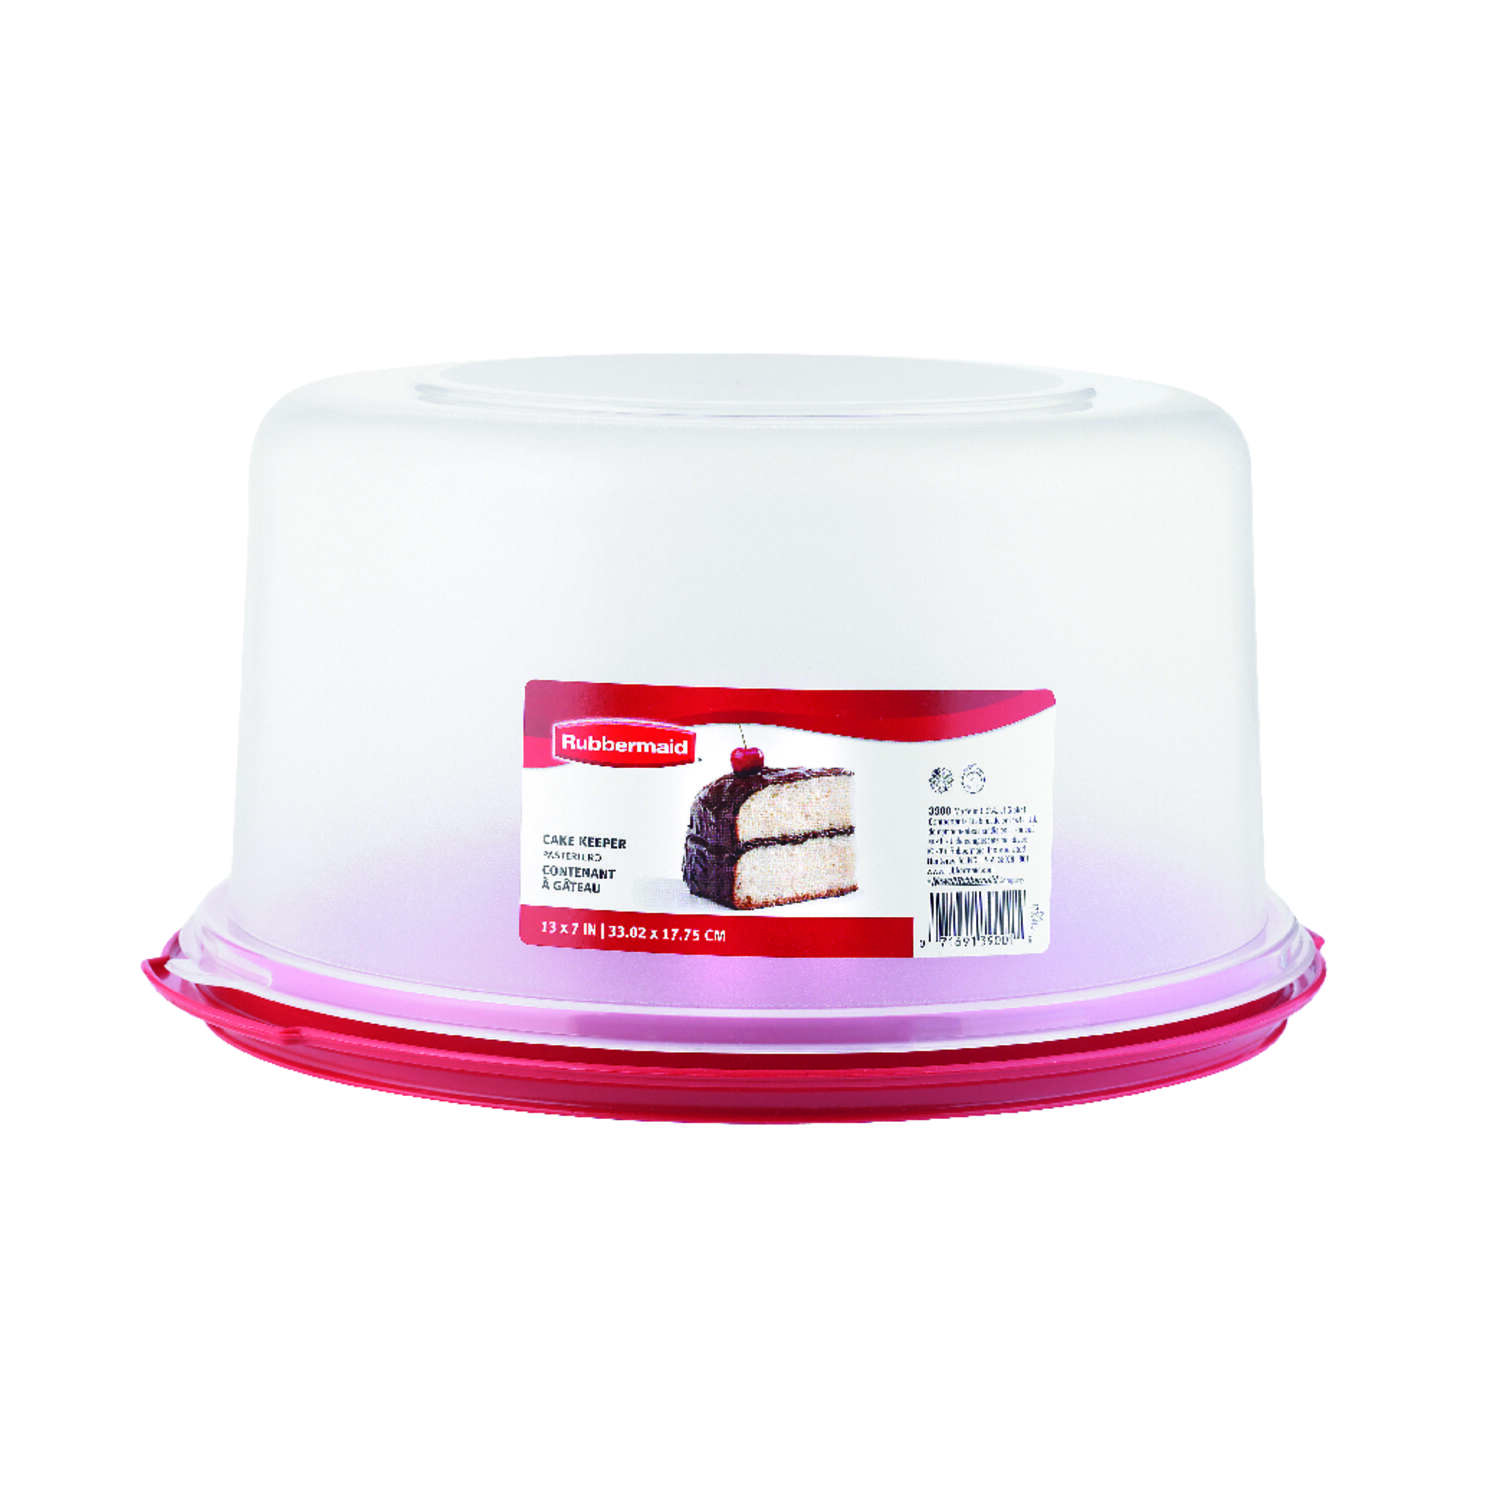 Rubbermaid  Cake Carrier  1 pk